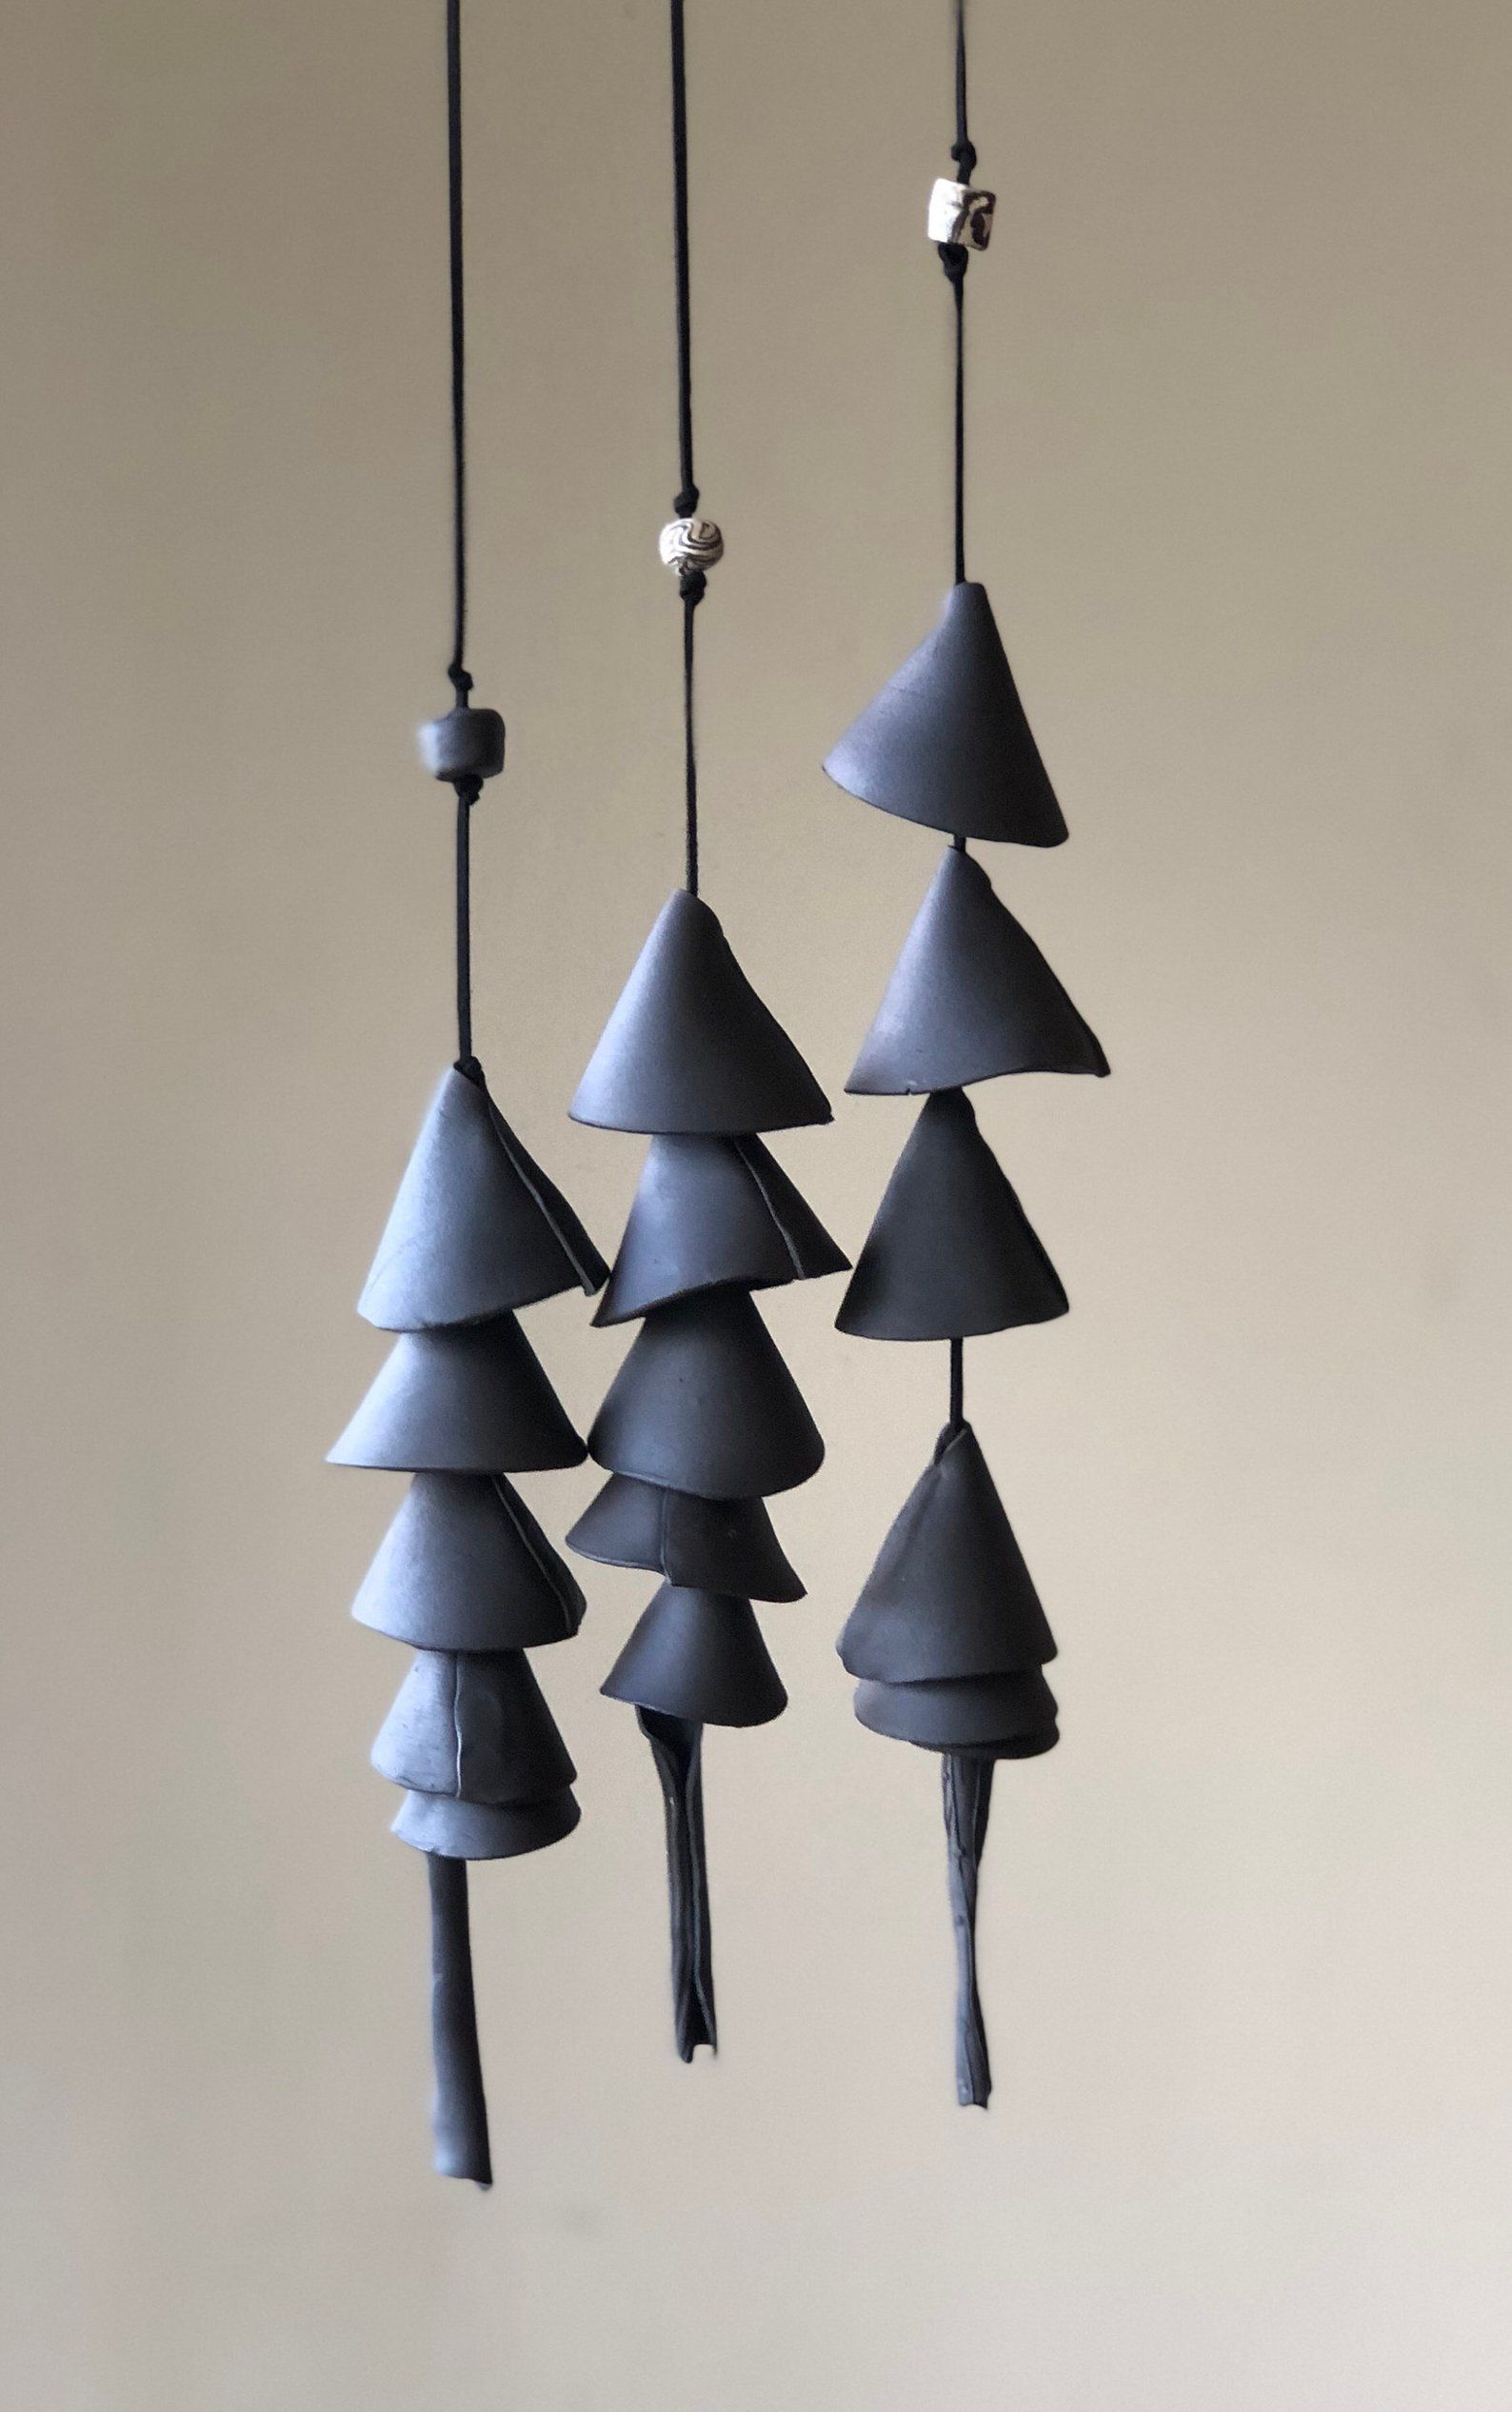 One Black Clay Ceramic Wind Chime Wrap Wind Chime Patio Etsy Black Clay Clay Ceramics Wind Chimes